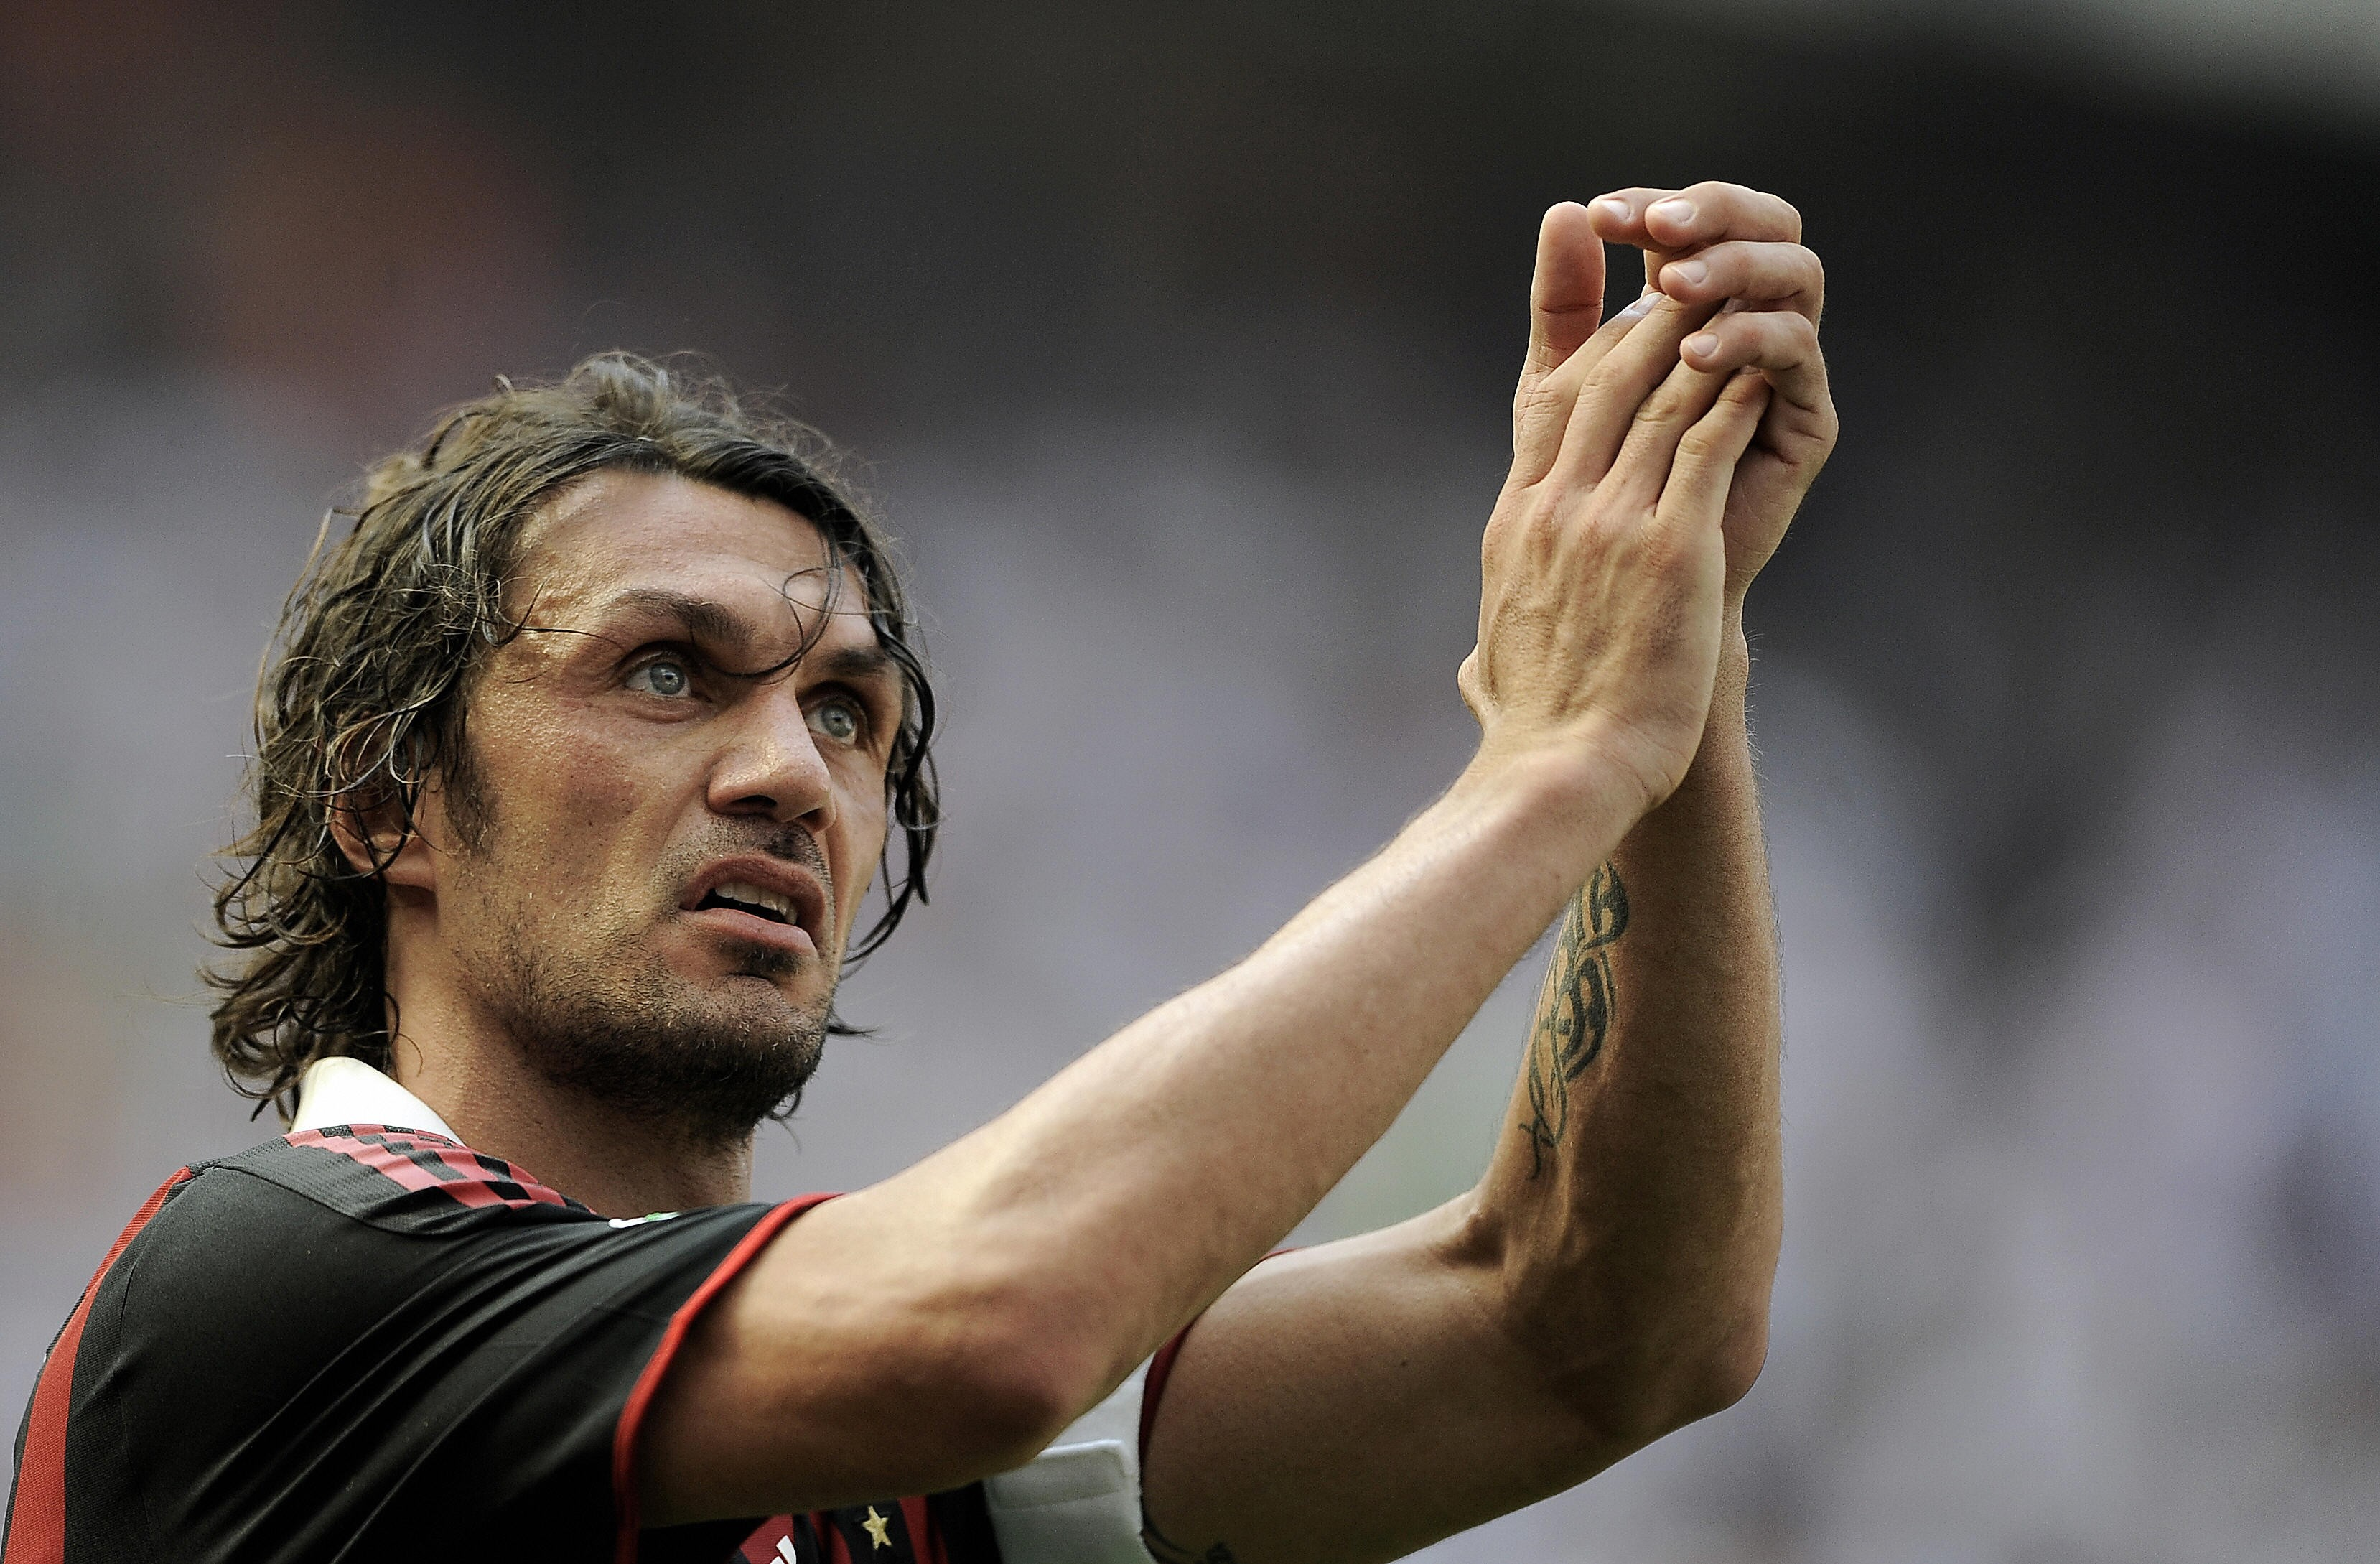 AC Milan's defender and captain Paolo Maldini versatality